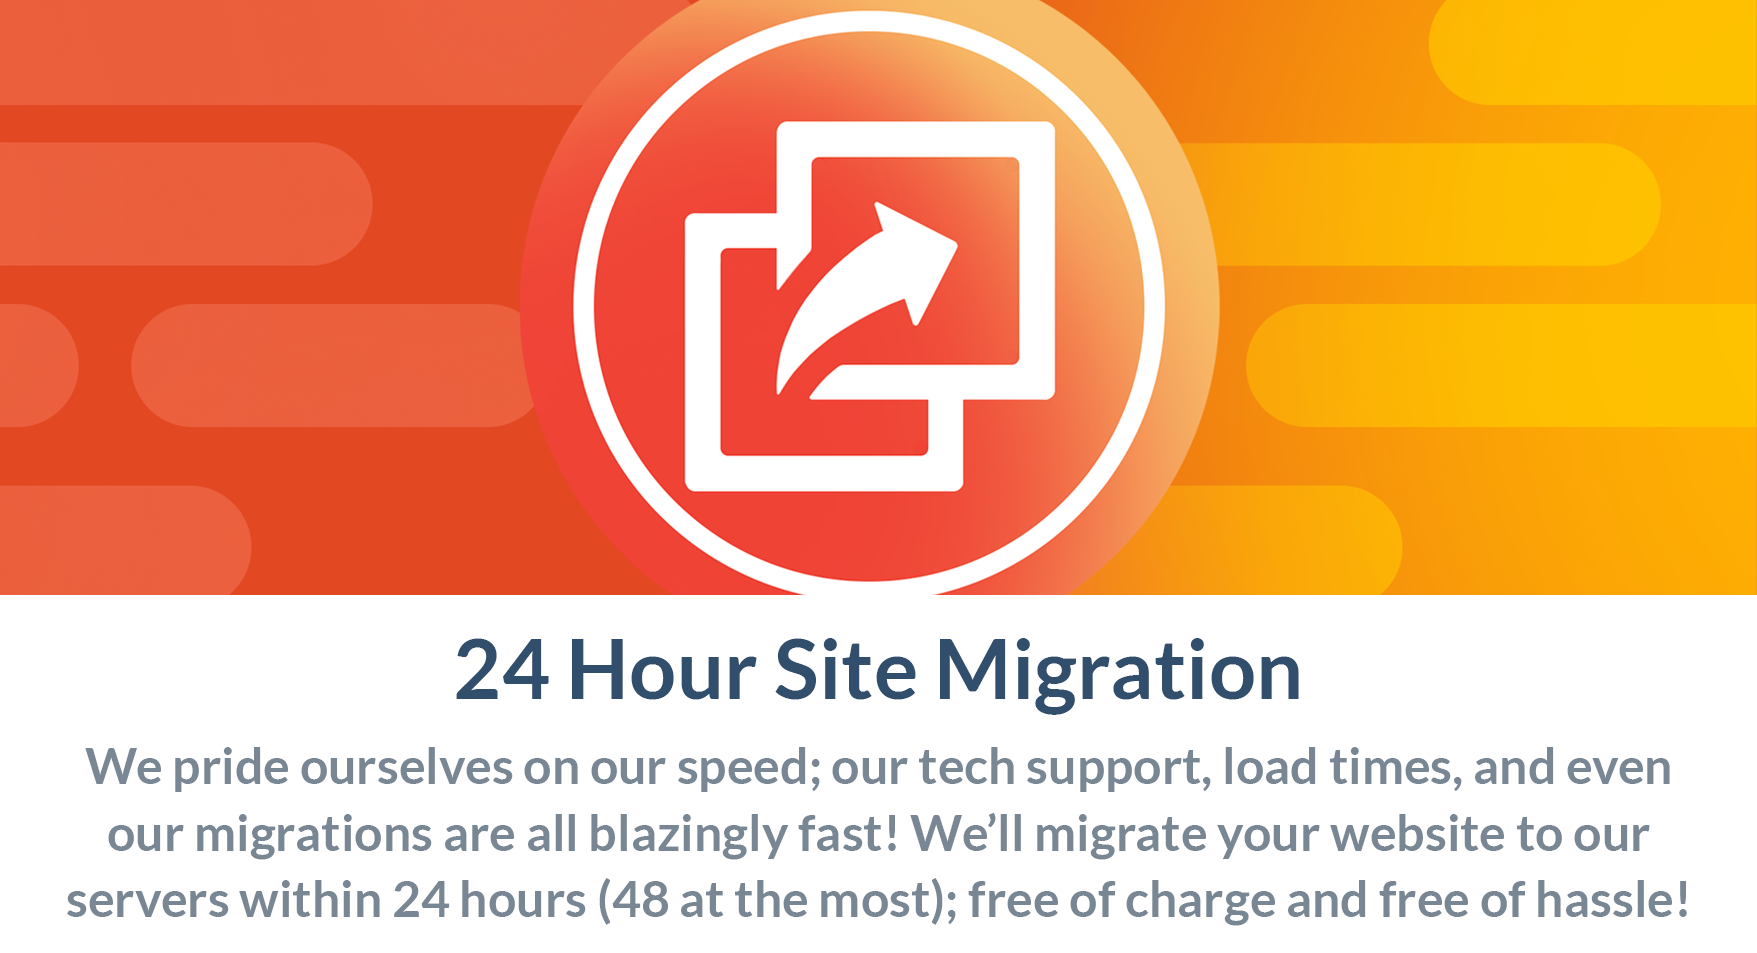 24 Hour Site Migration